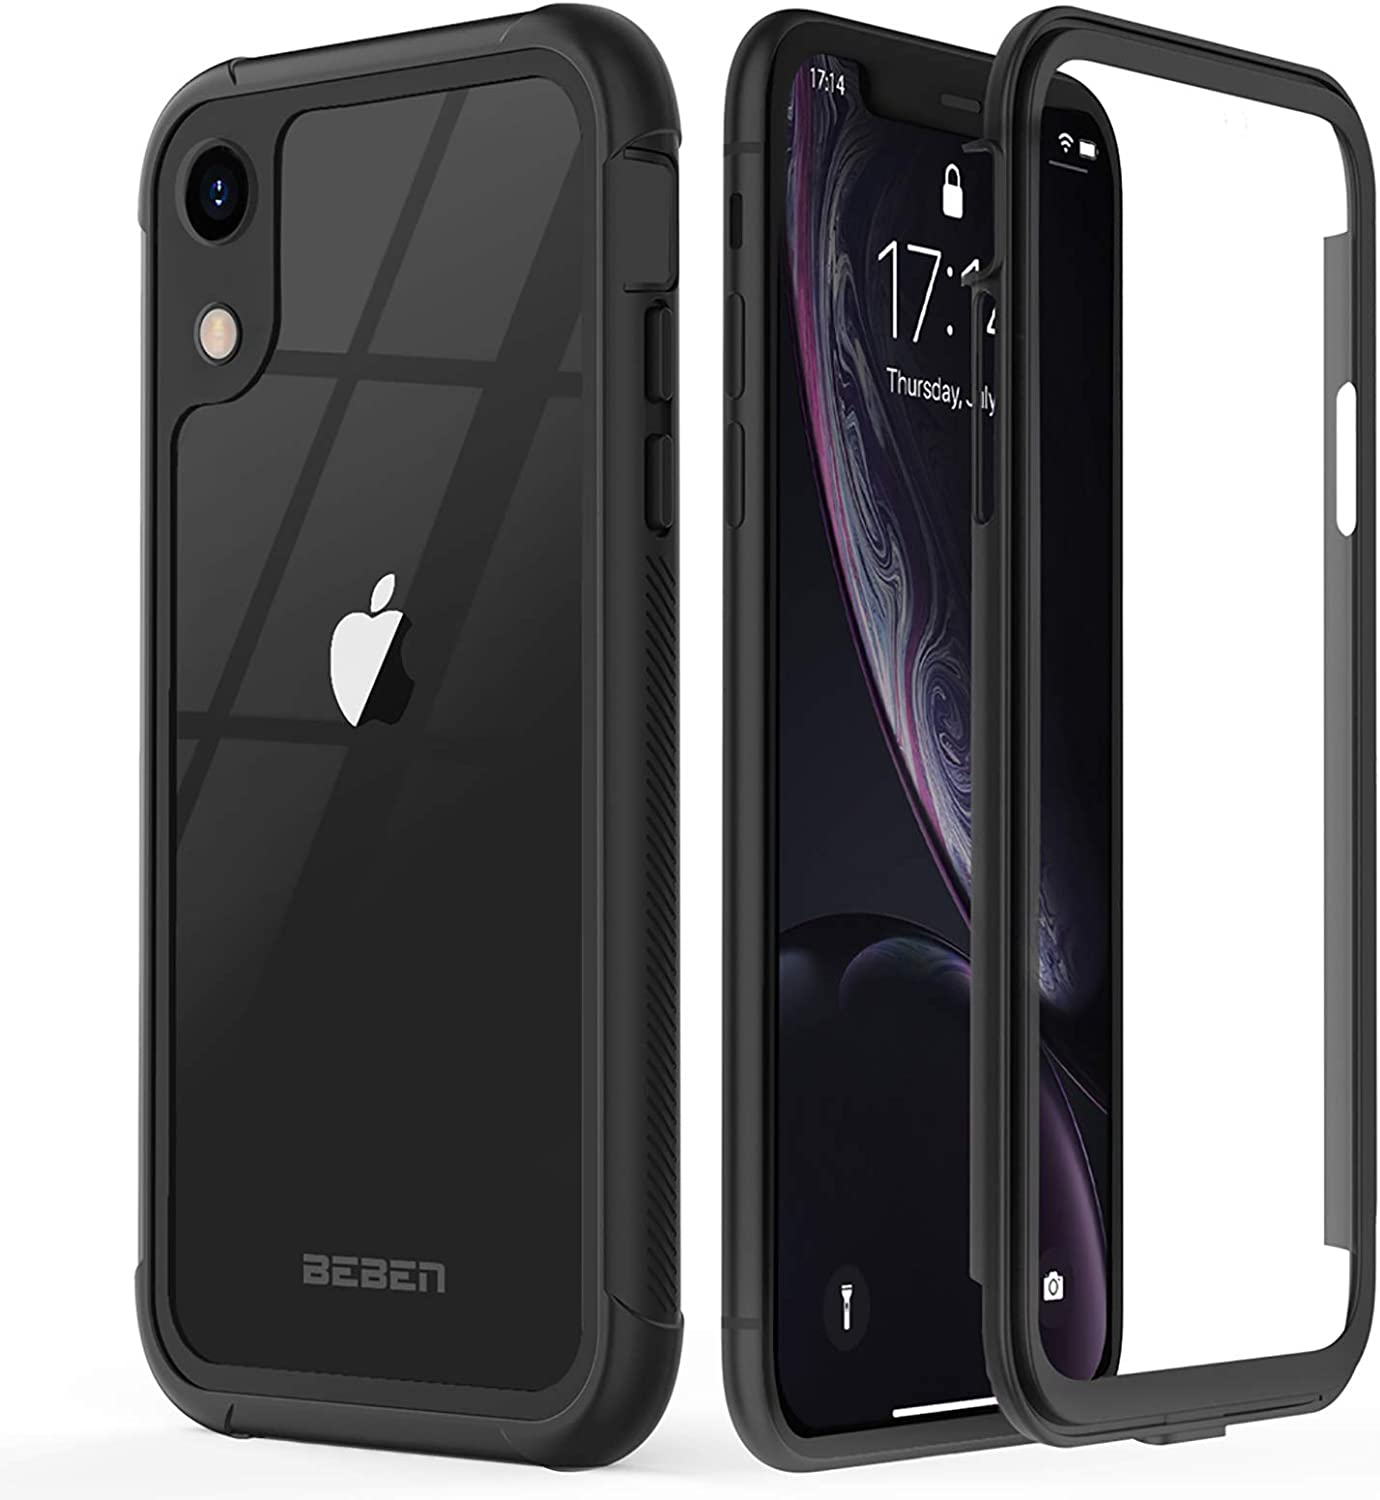 BEBEN Designed for iPhone XR Case, Full-Body Dual Layer Rugged Clear Bumper Case with Built-in Screen Protector, Heavy Drop Protection Shock Absorption Dustproof Cover for iPhone XR 2018 (Black)